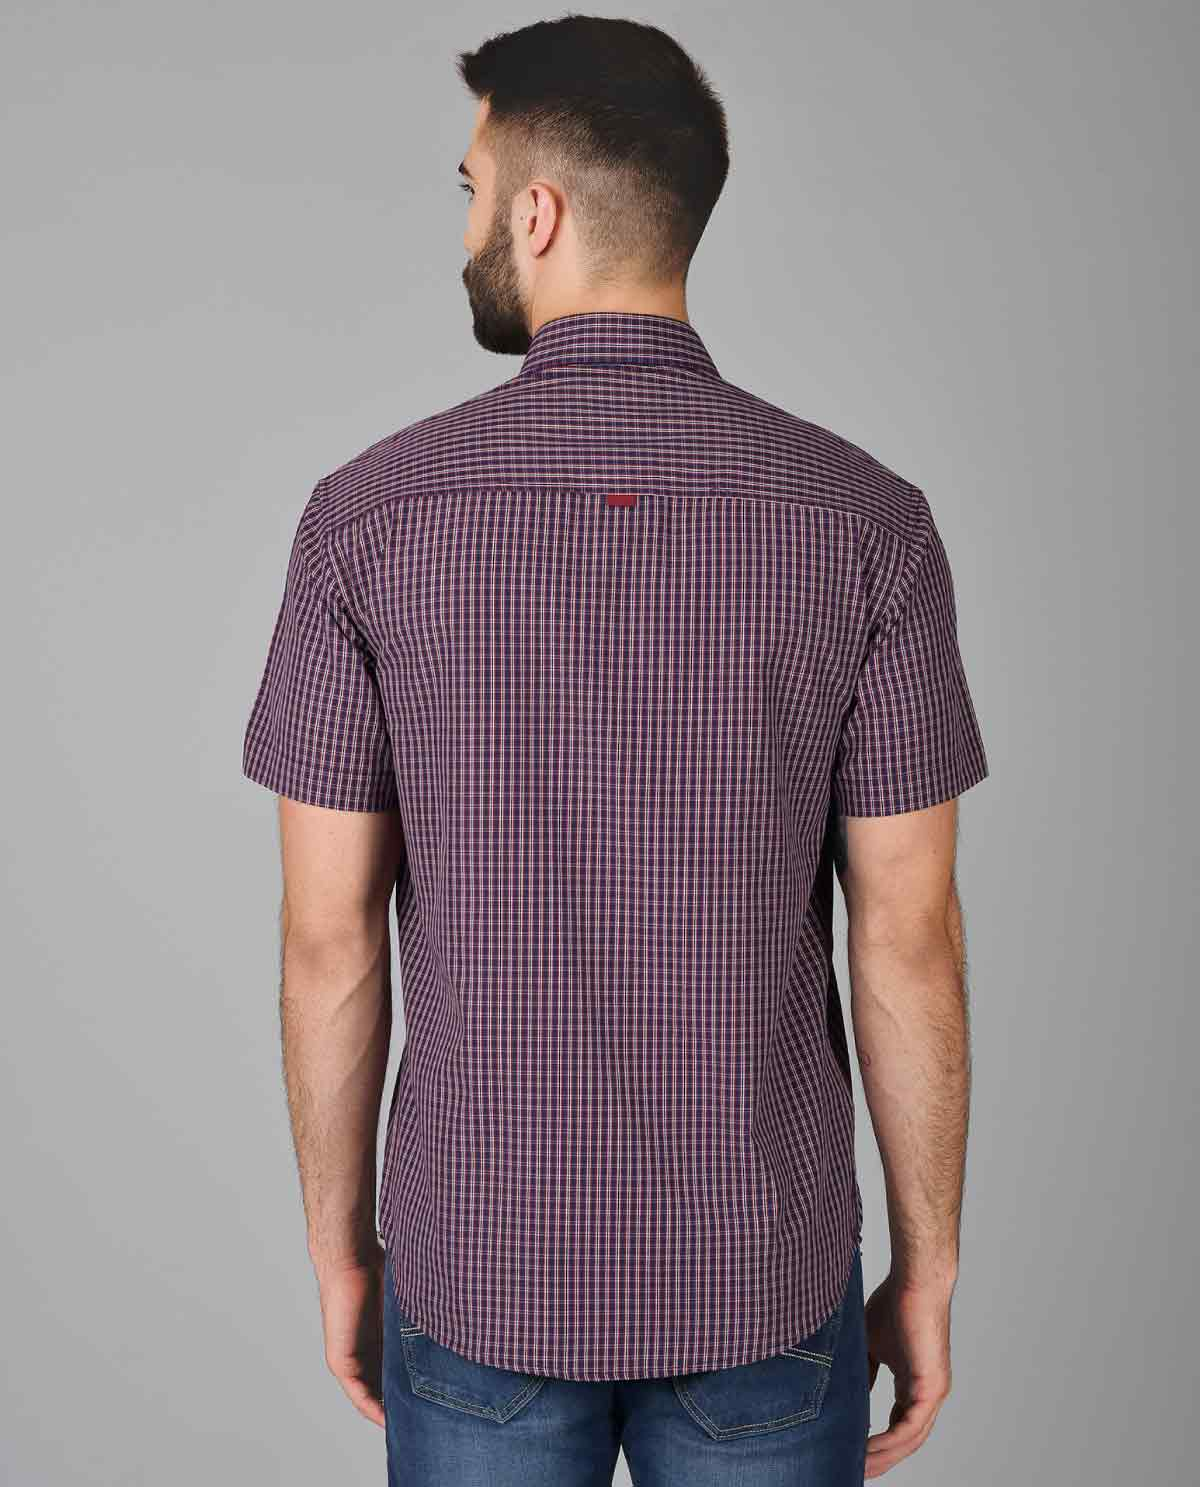 Red-and-Black-Small-Check-Half-Sleeve-Shirt-for-Men-5 ...